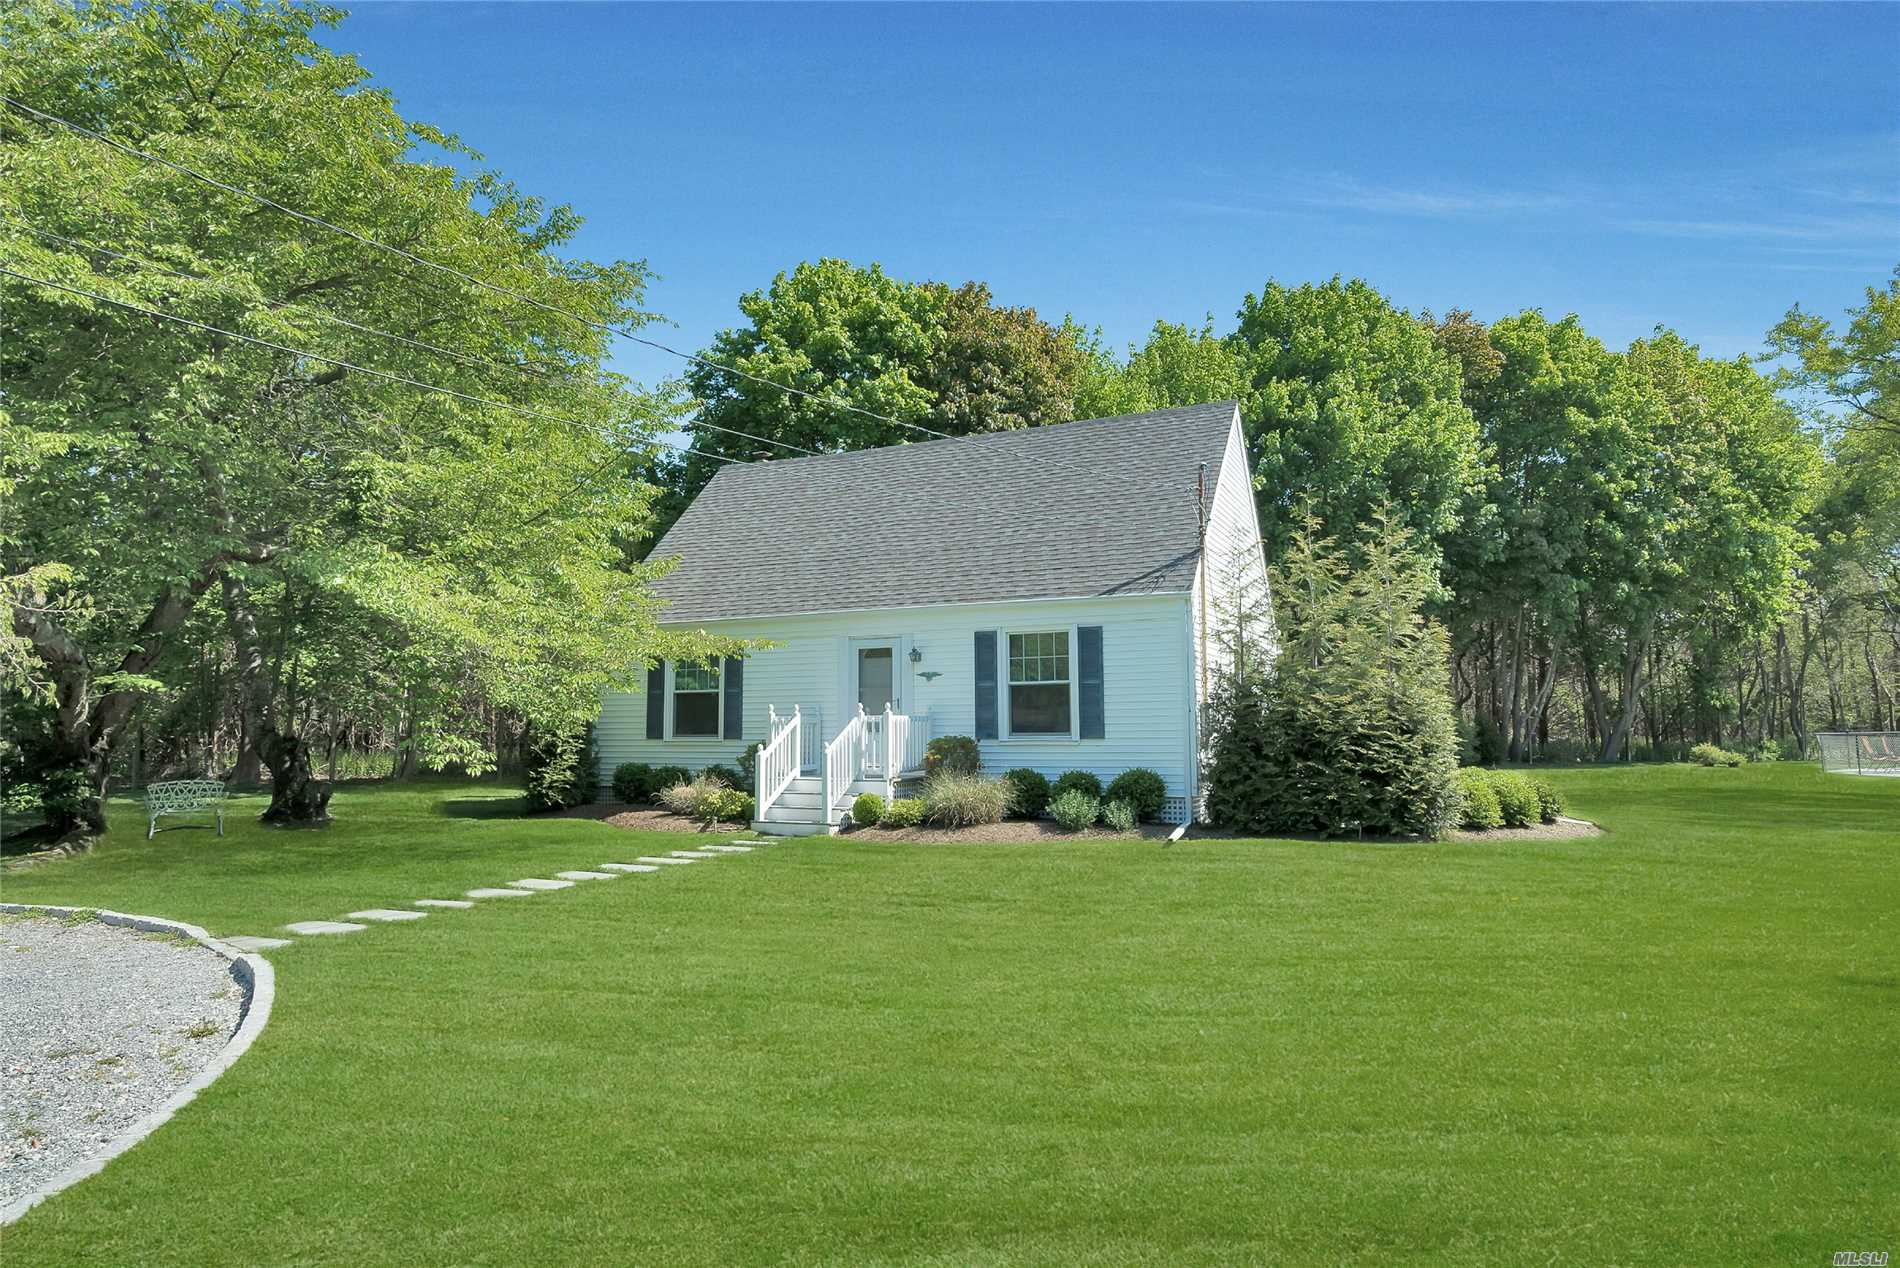 Escape To A Quaint, Three Bedroom Home Tucked Away In Westhampton, Just 3Miles From The Village Of Westhampton Beach. South Of Highway, It Sits On A Beautiful, 3/4 Acre, Fully Fenced Yard With Fenced Heated Inground Pool. Sun Drenched Living & Dining Rooms, Crisply Renovated W New Kitchen , New Baths And Two, Rear Patios. Master Bedroom En Suite On The Upper Level Enjoys An Open Loft Office Space For Any Left Over Work That Interrupts The Lazy Days Of Summer. Available For 2019.